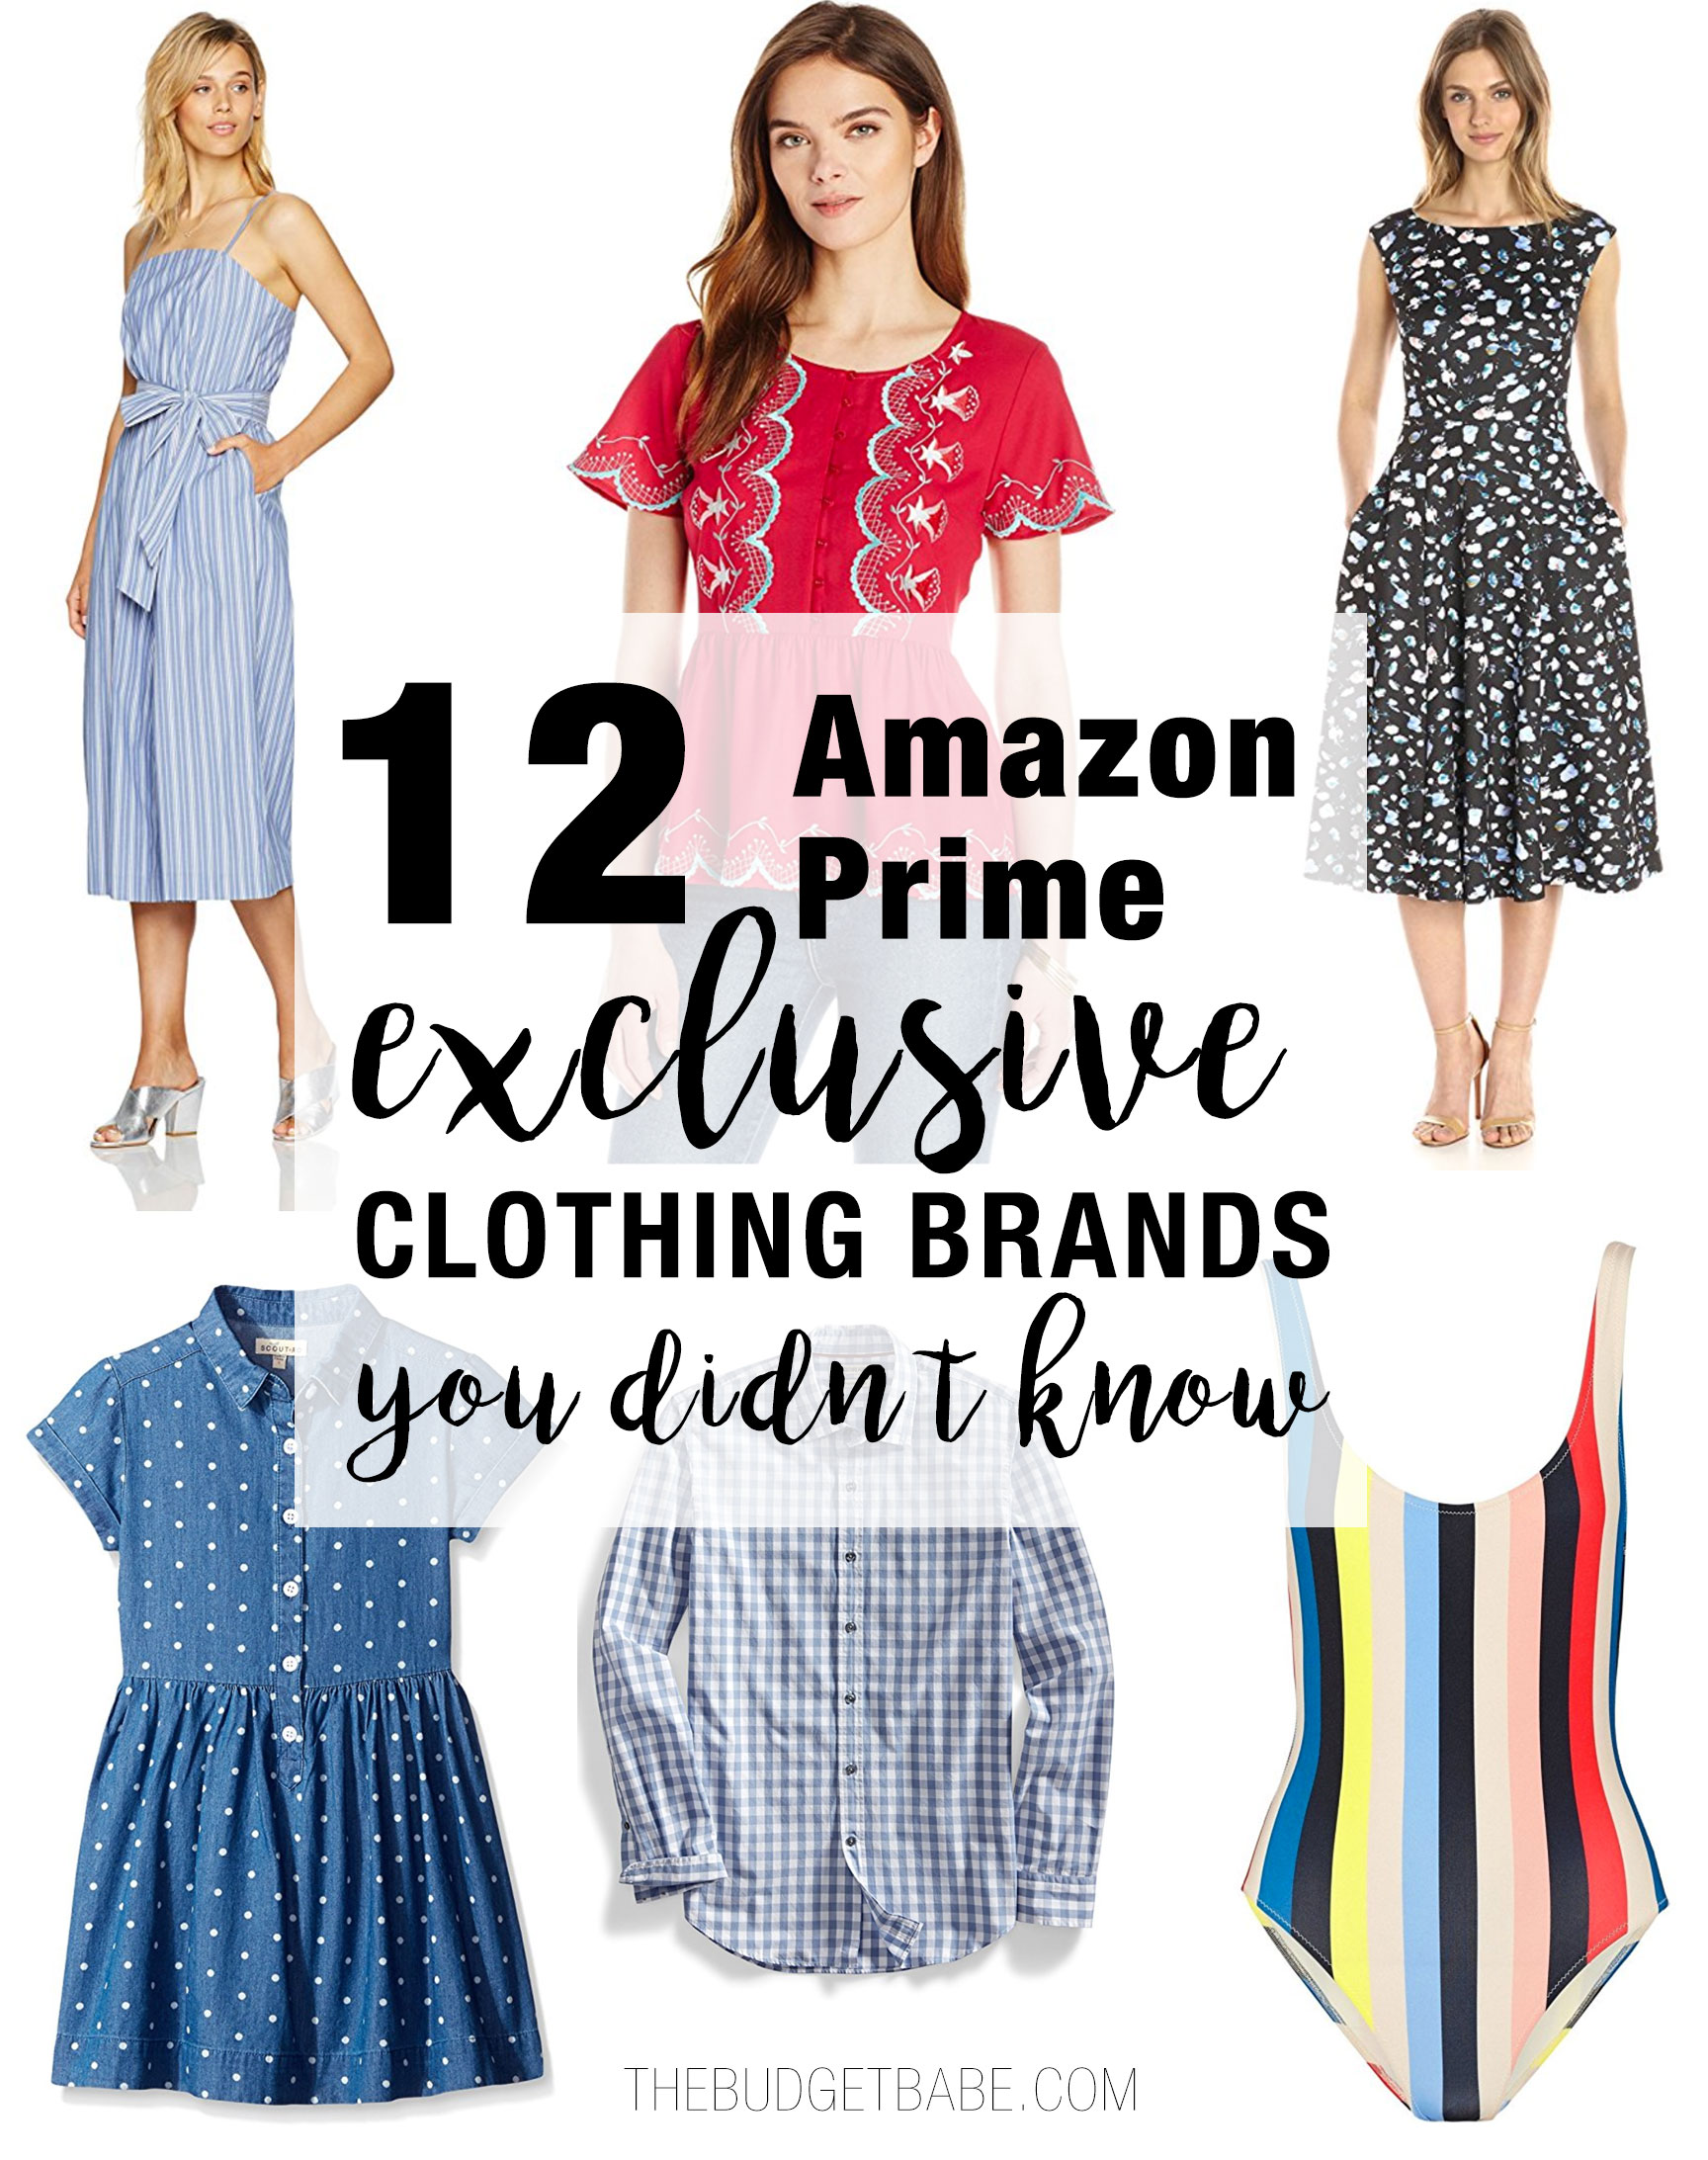 47a9fe800c85b 12 Amazon Prime Exclusive Clothing Brands You Didn't Know - The ...